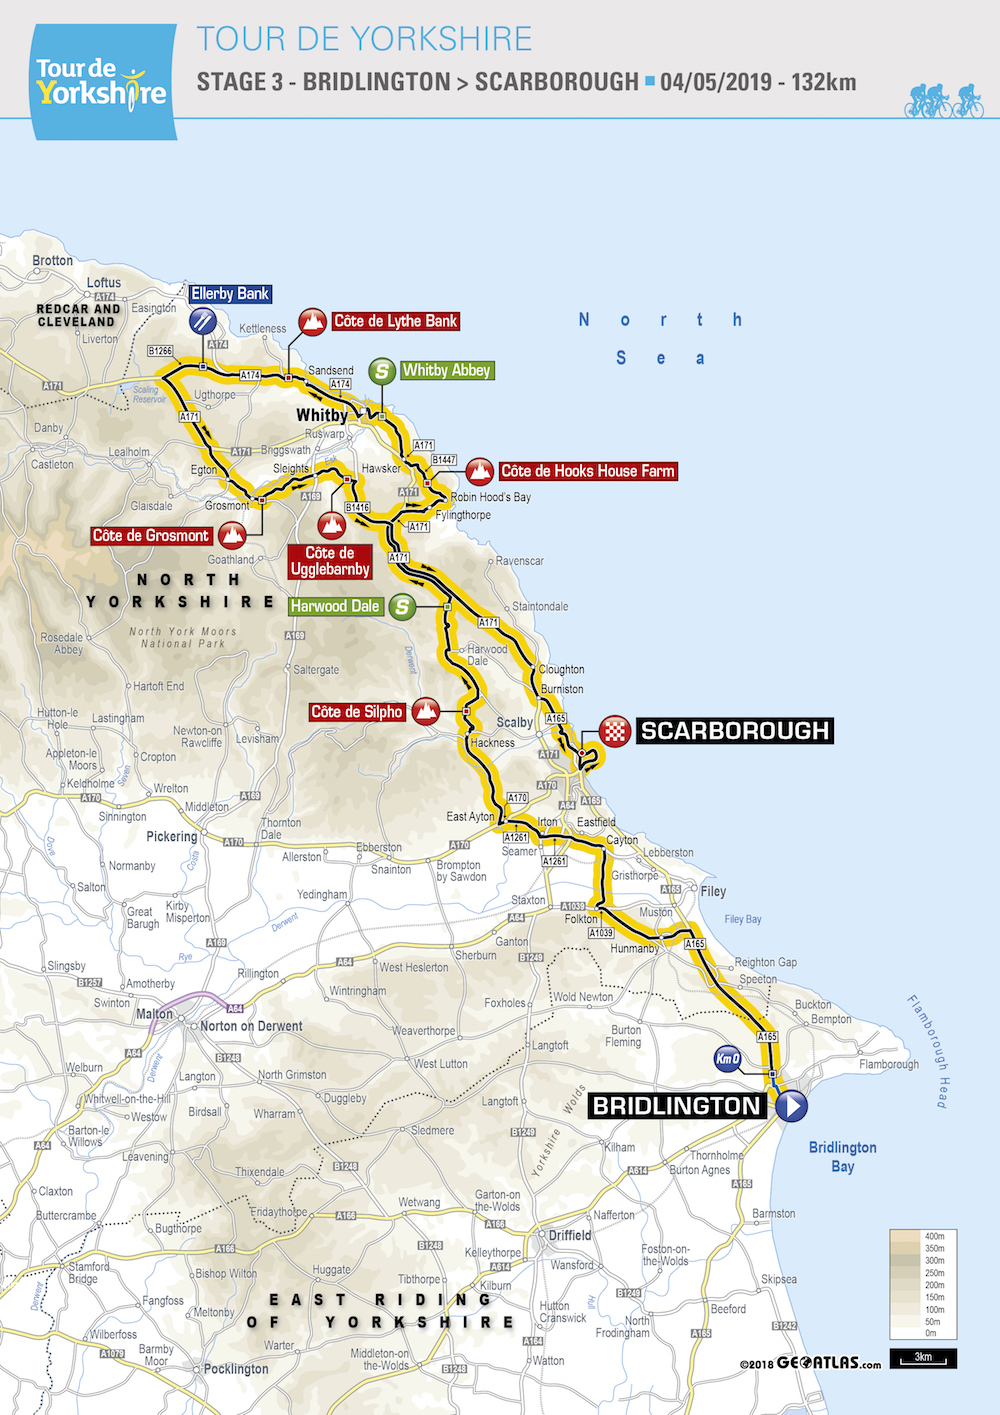 Tour de Yorkshire route 2019: maps and profiles of every stage